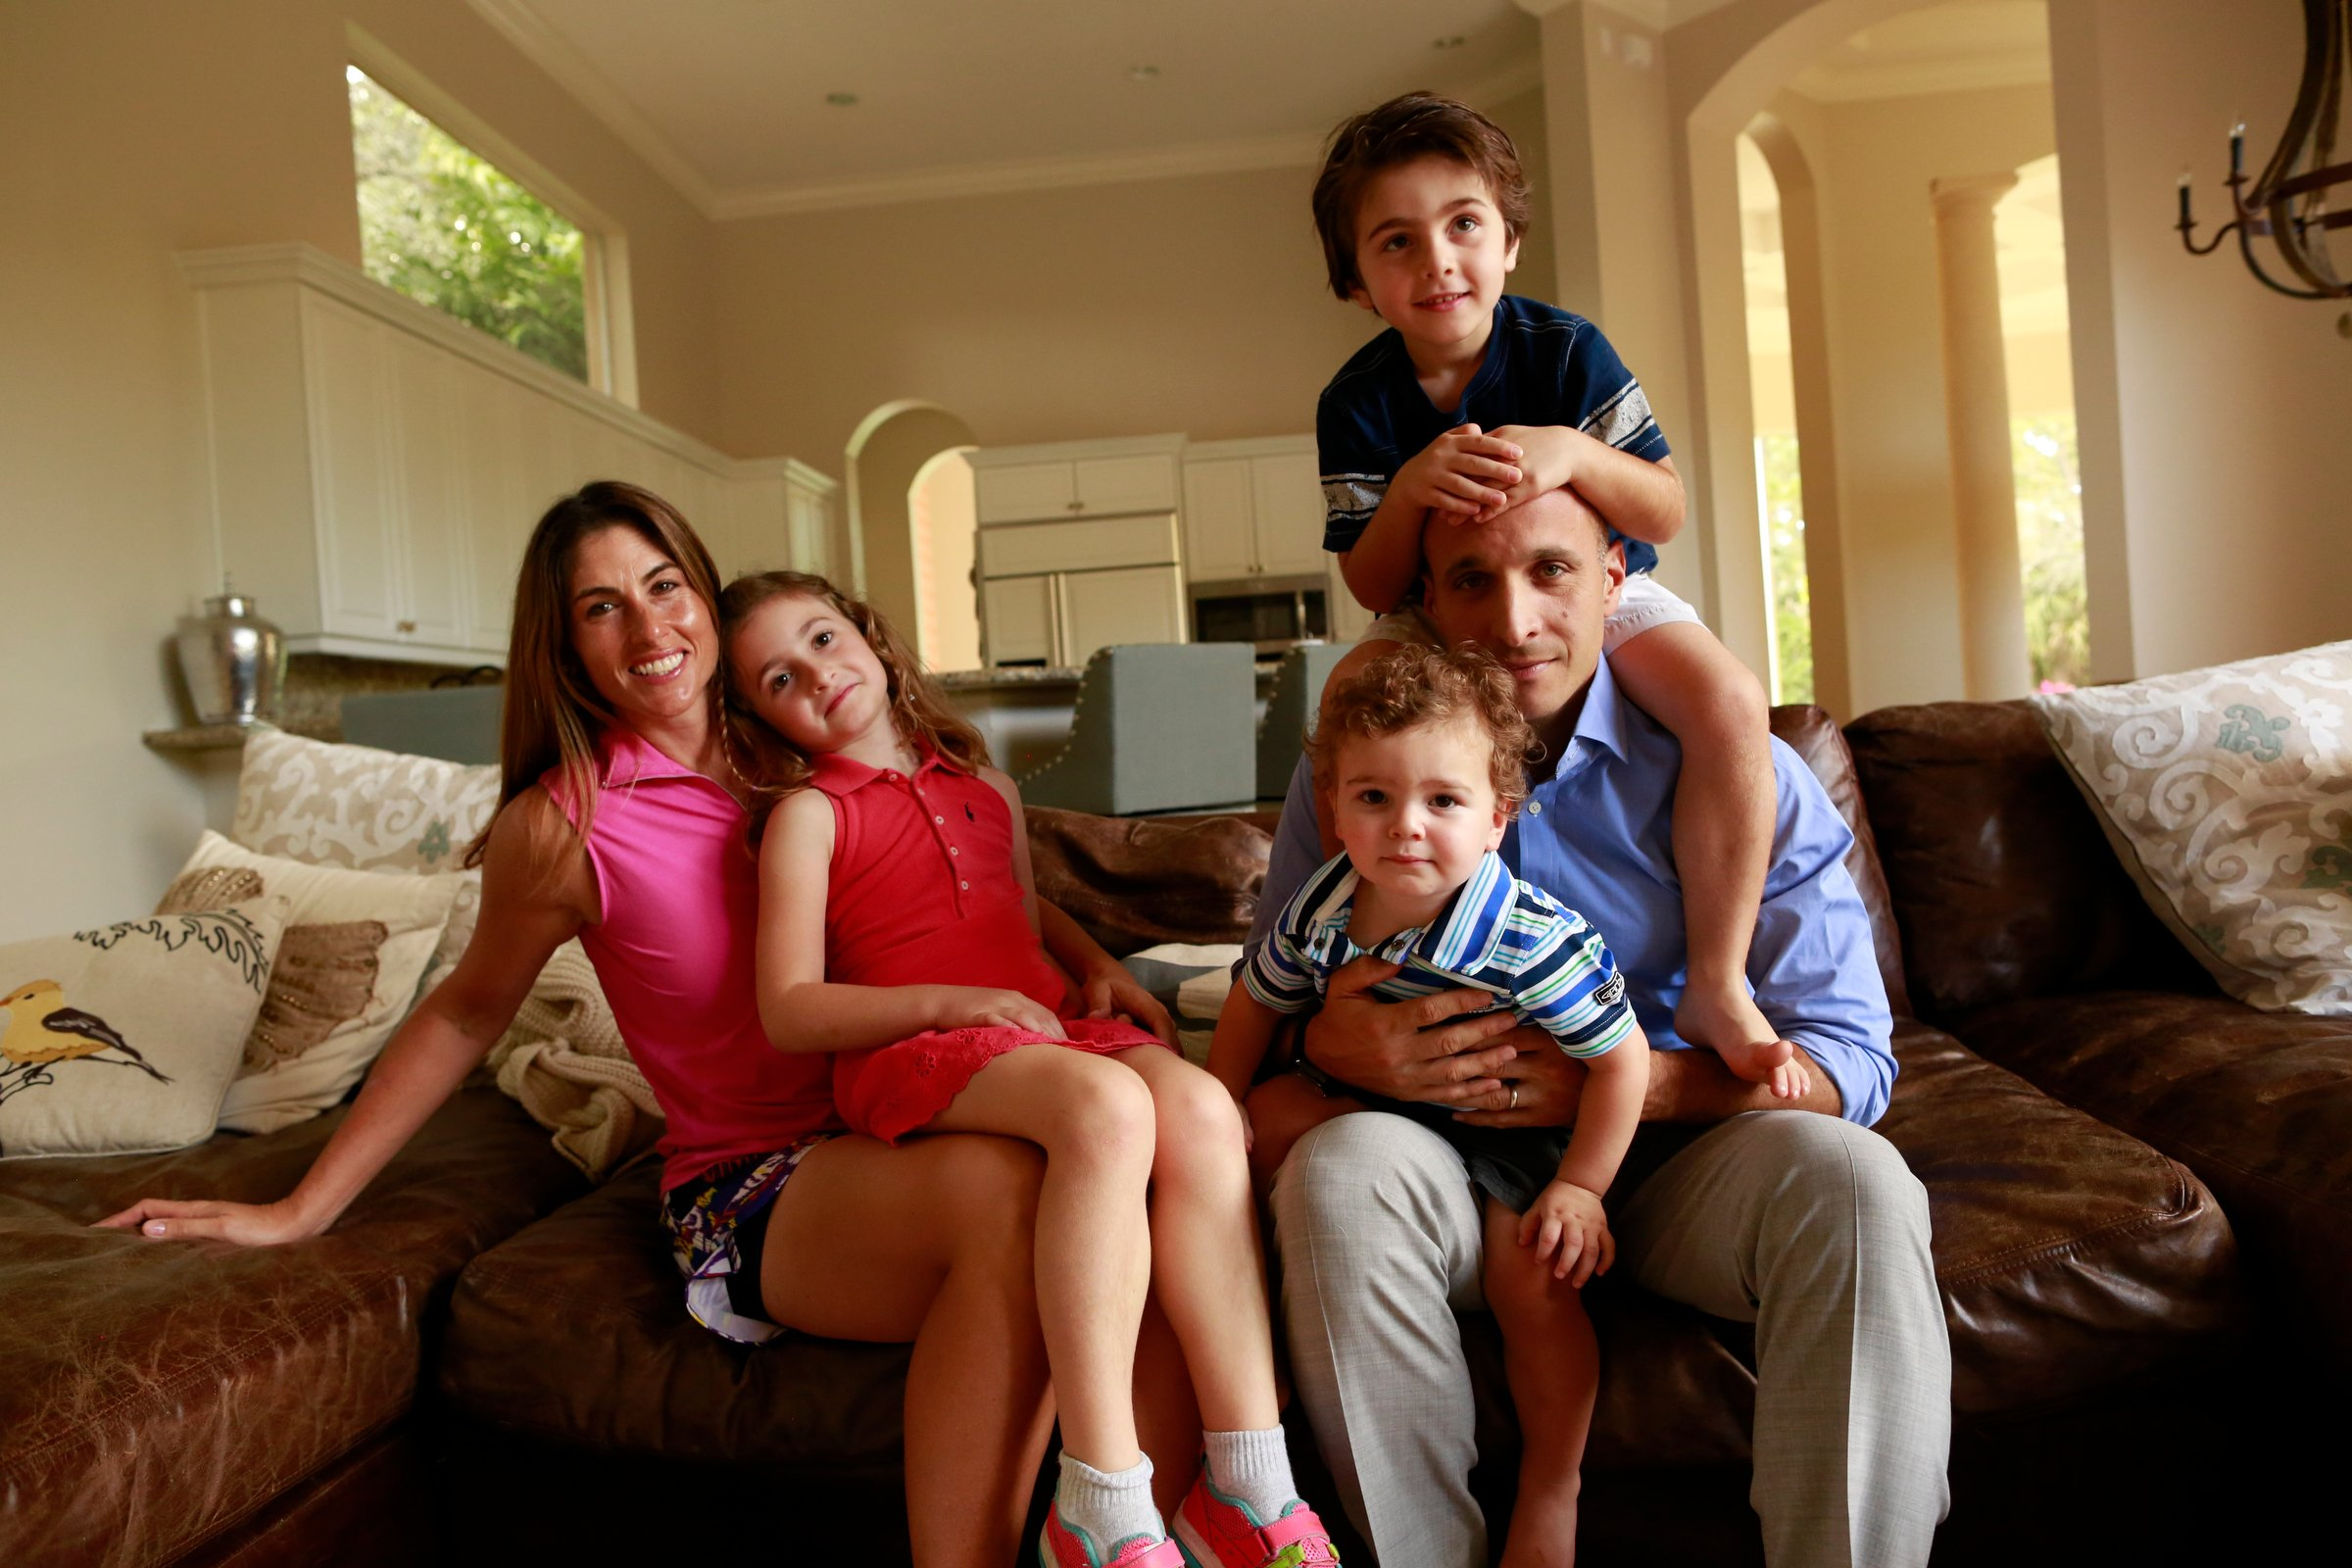 Pete Bevacqua with his wife, Tiffany, and their three children at homein 2015.